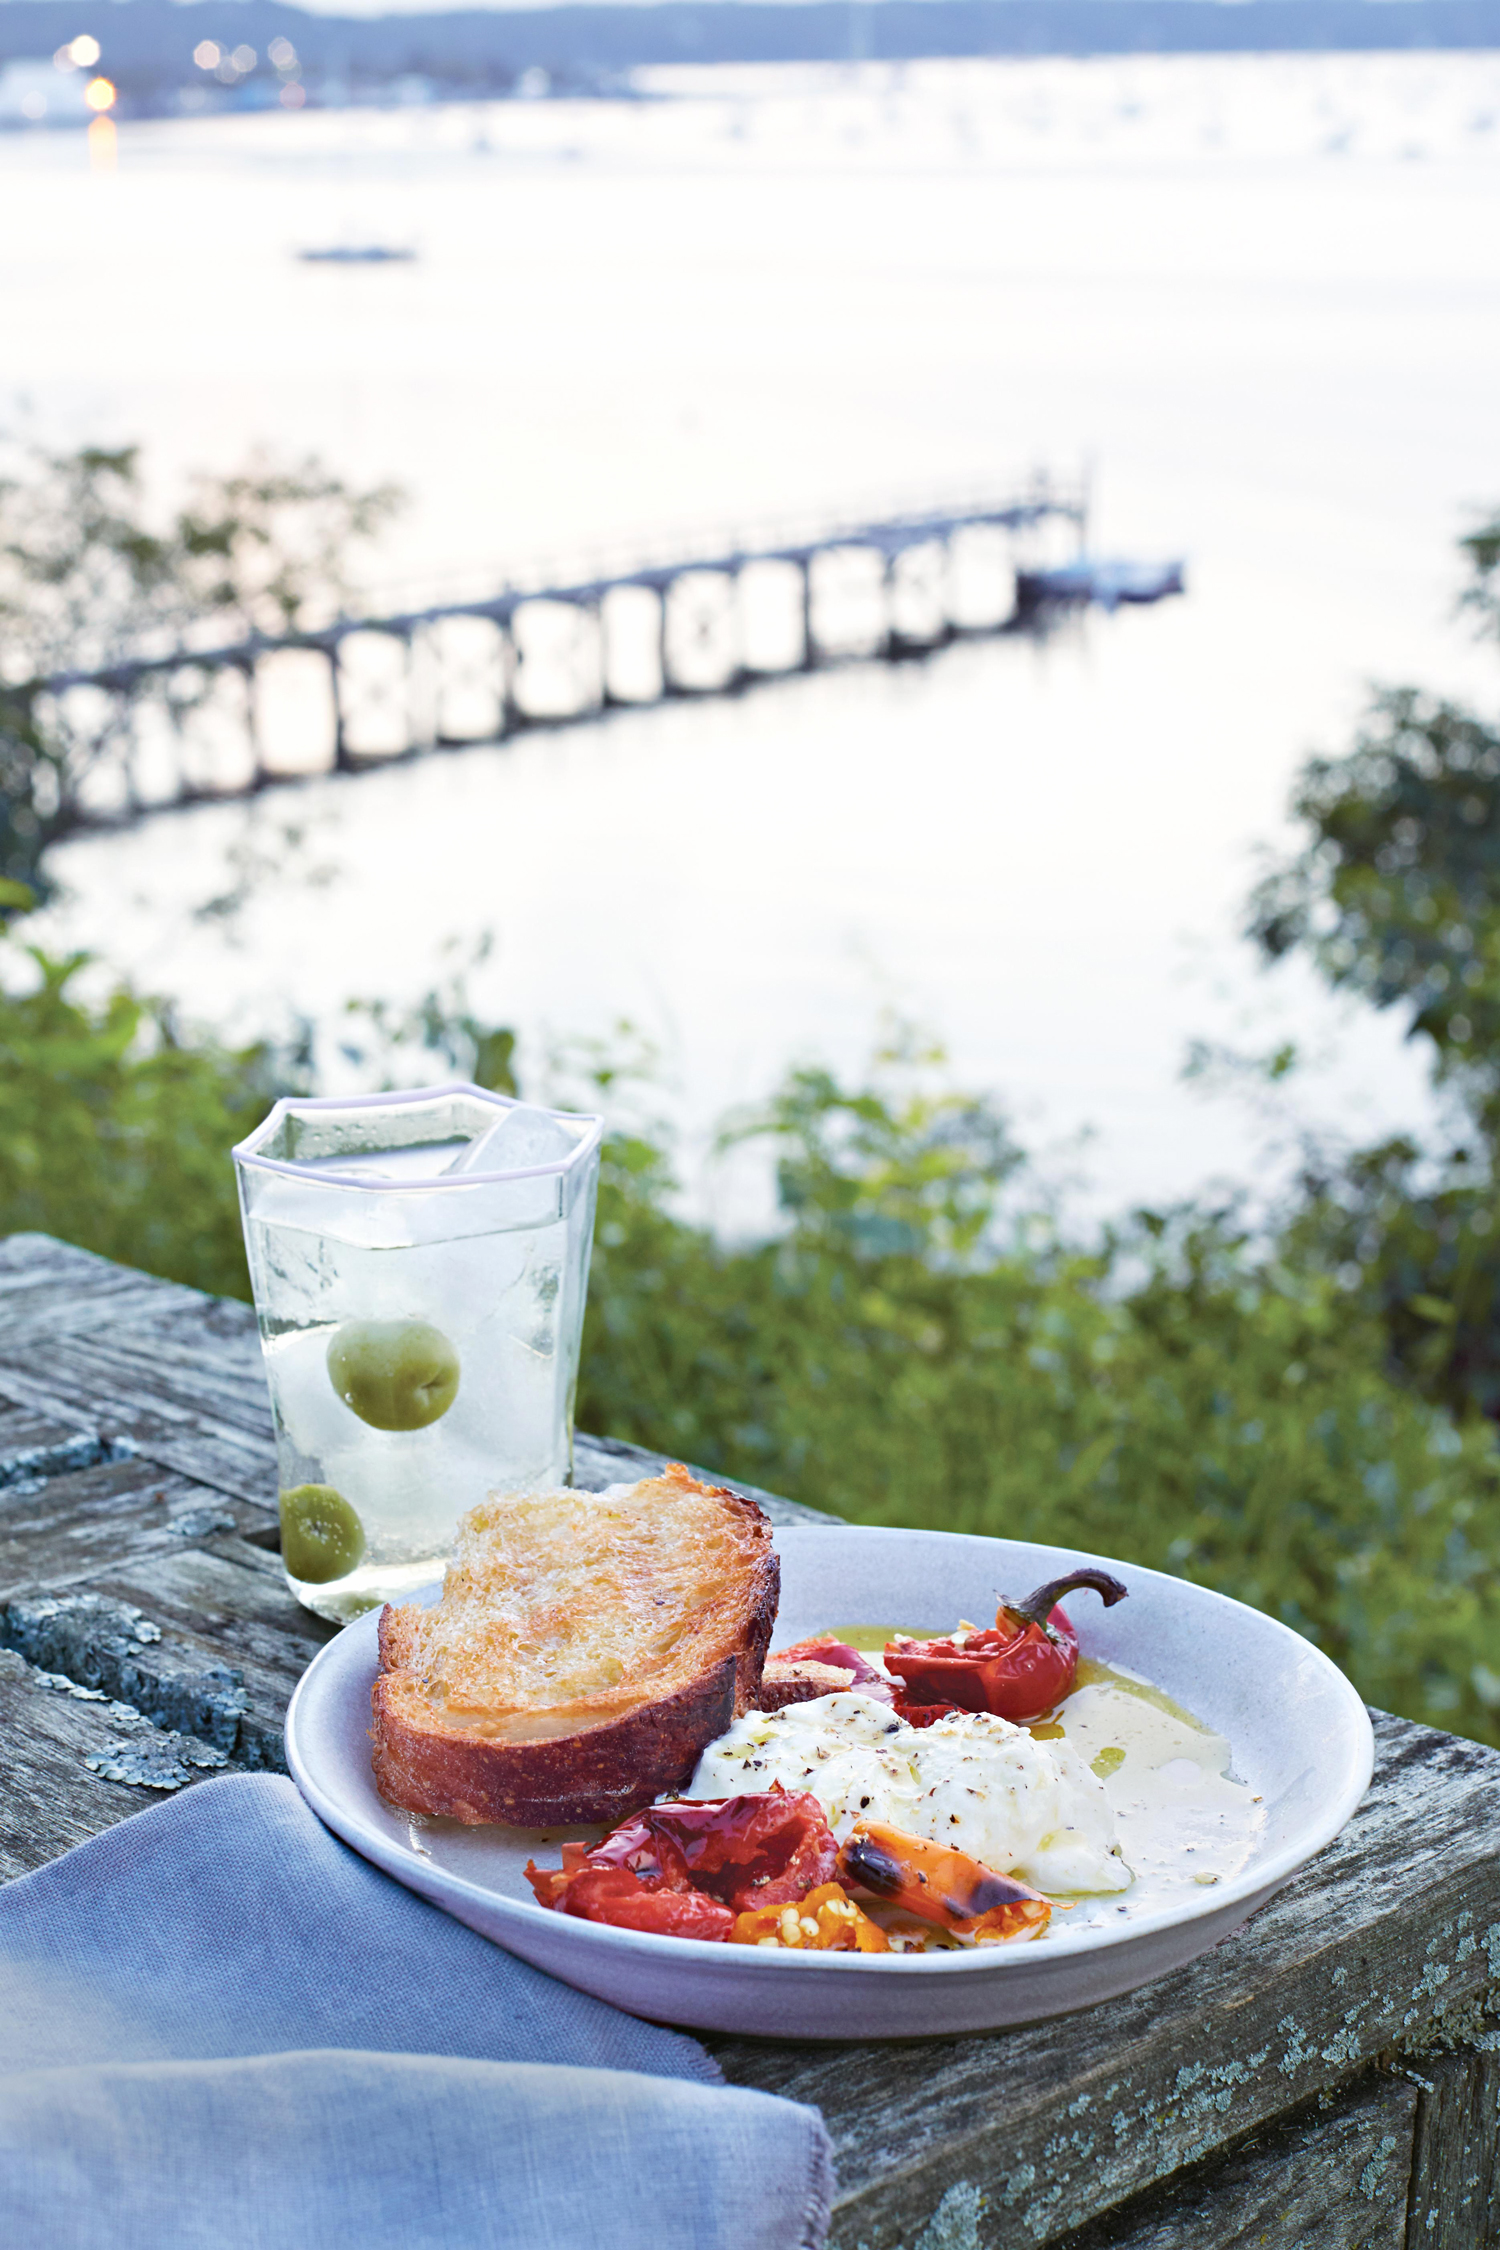 grilled bread and chiles with burrata placed on an outdoor picnic table